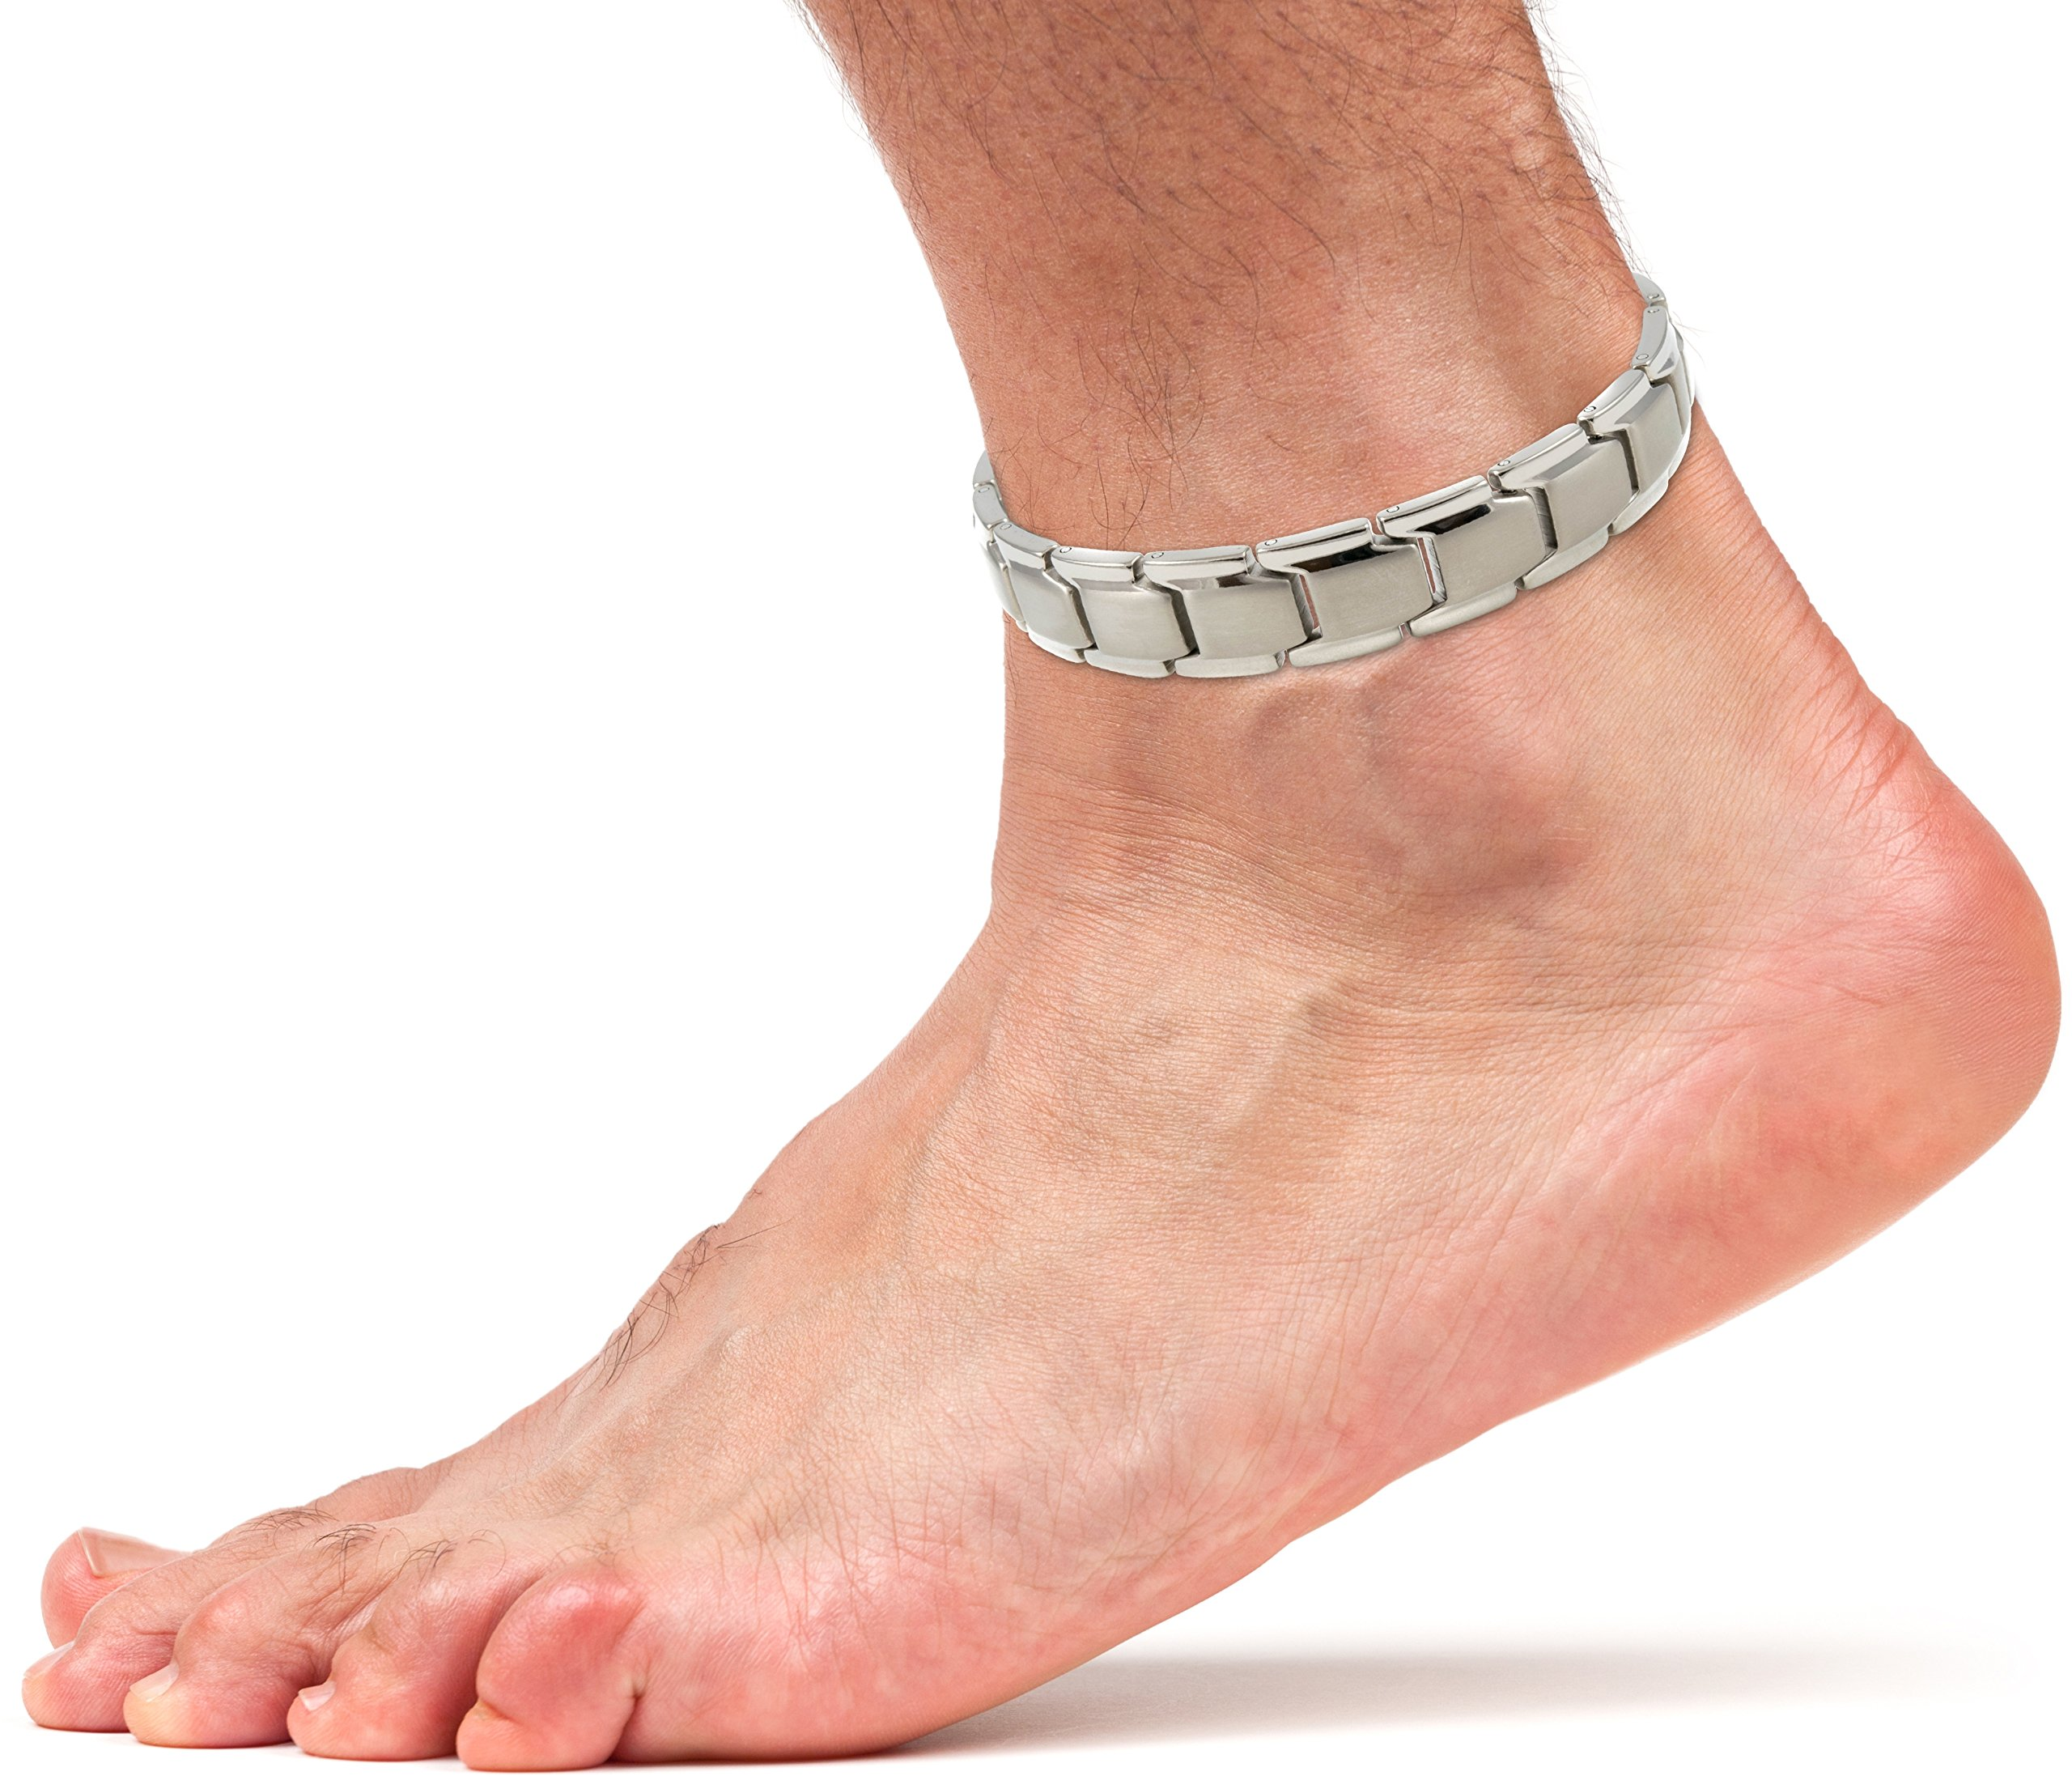 Elegant Titanium Magnetic Therapy Anklet For Men and Women Arthritis Pain Relief & Inflammation Reduction For Feet And Ankles (Silver)